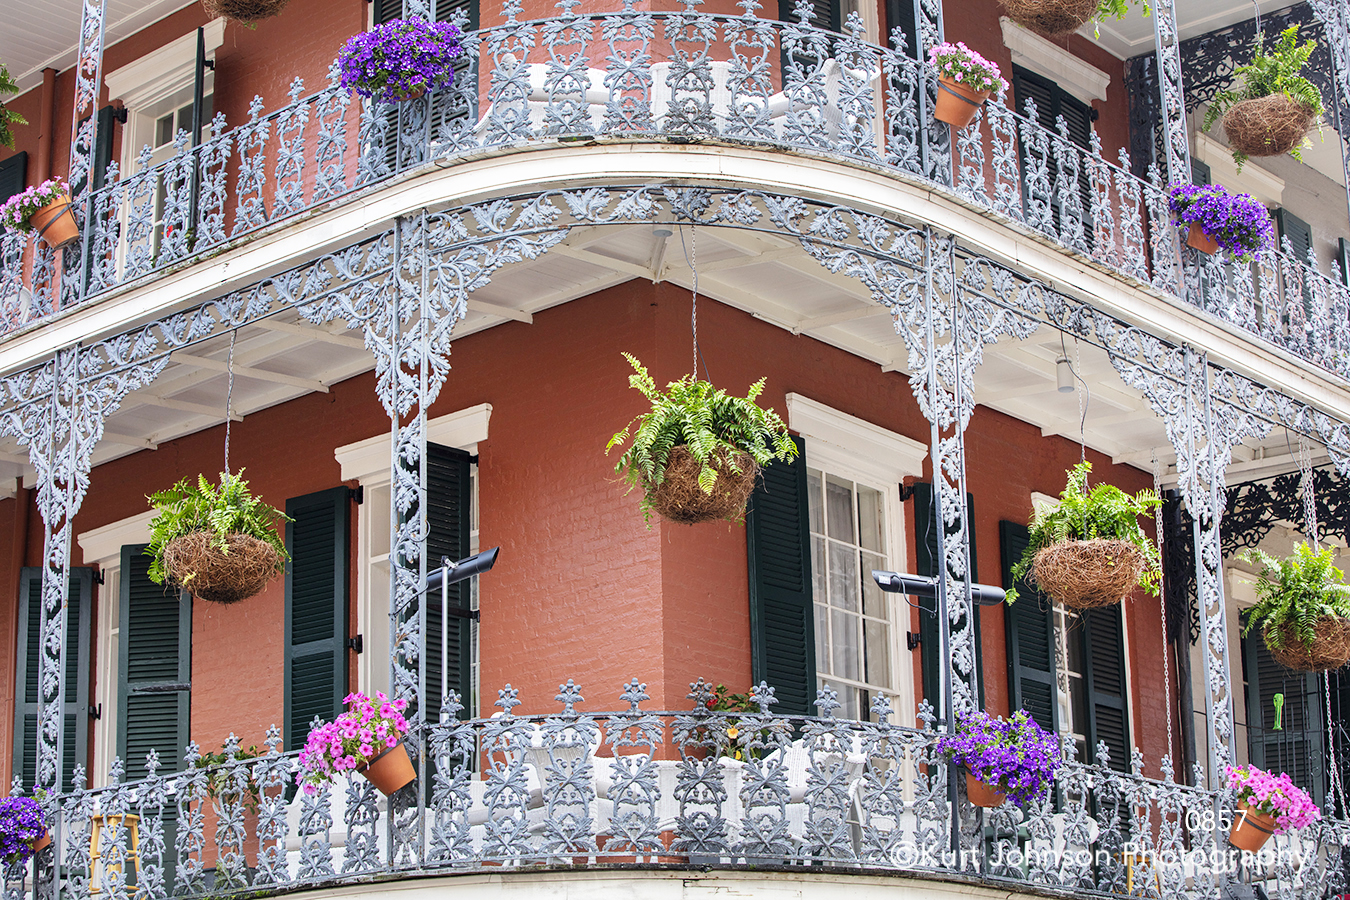 city downtown red house balcony windows view new orleans colorful flowers south southeast